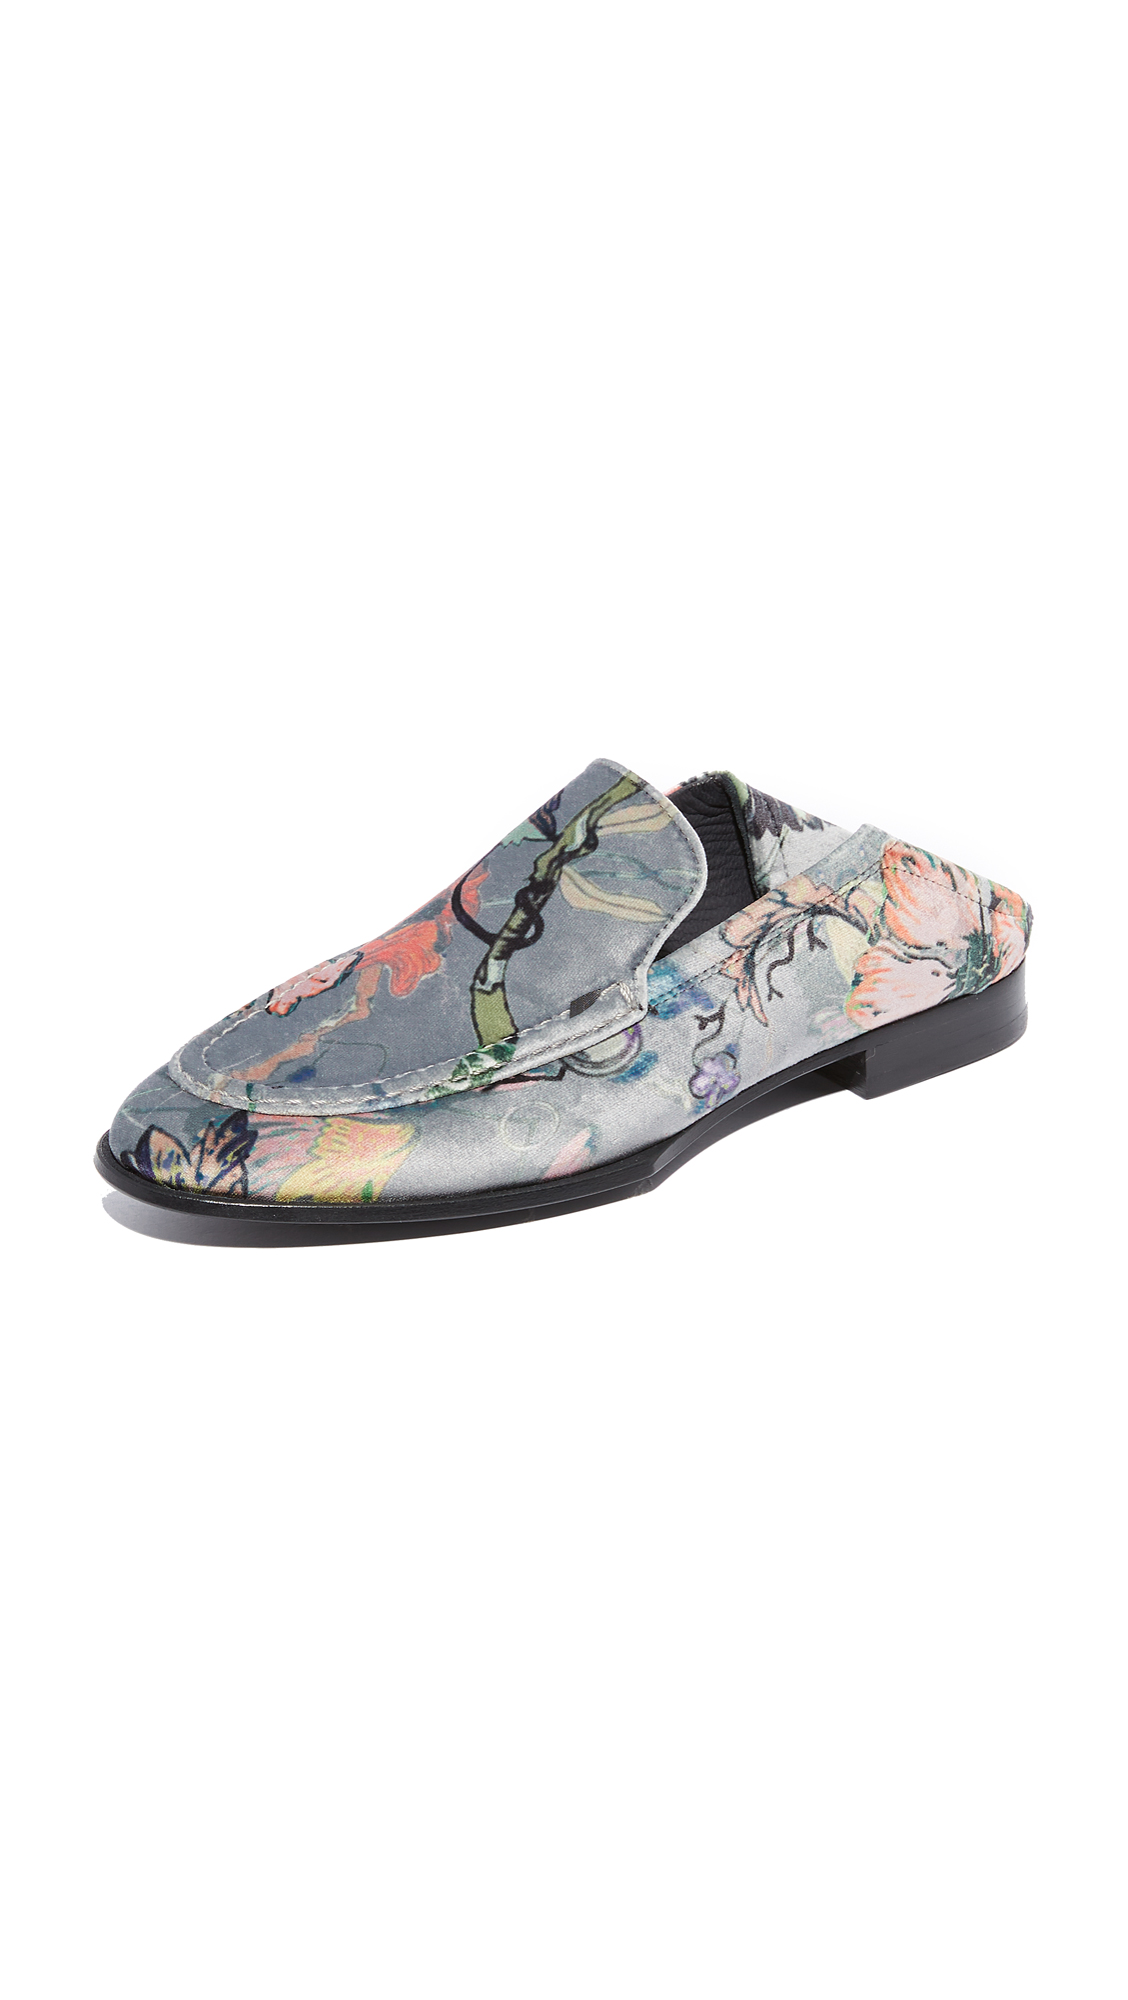 Rag & Bone Alix Convertible Loafers - Grey Floral